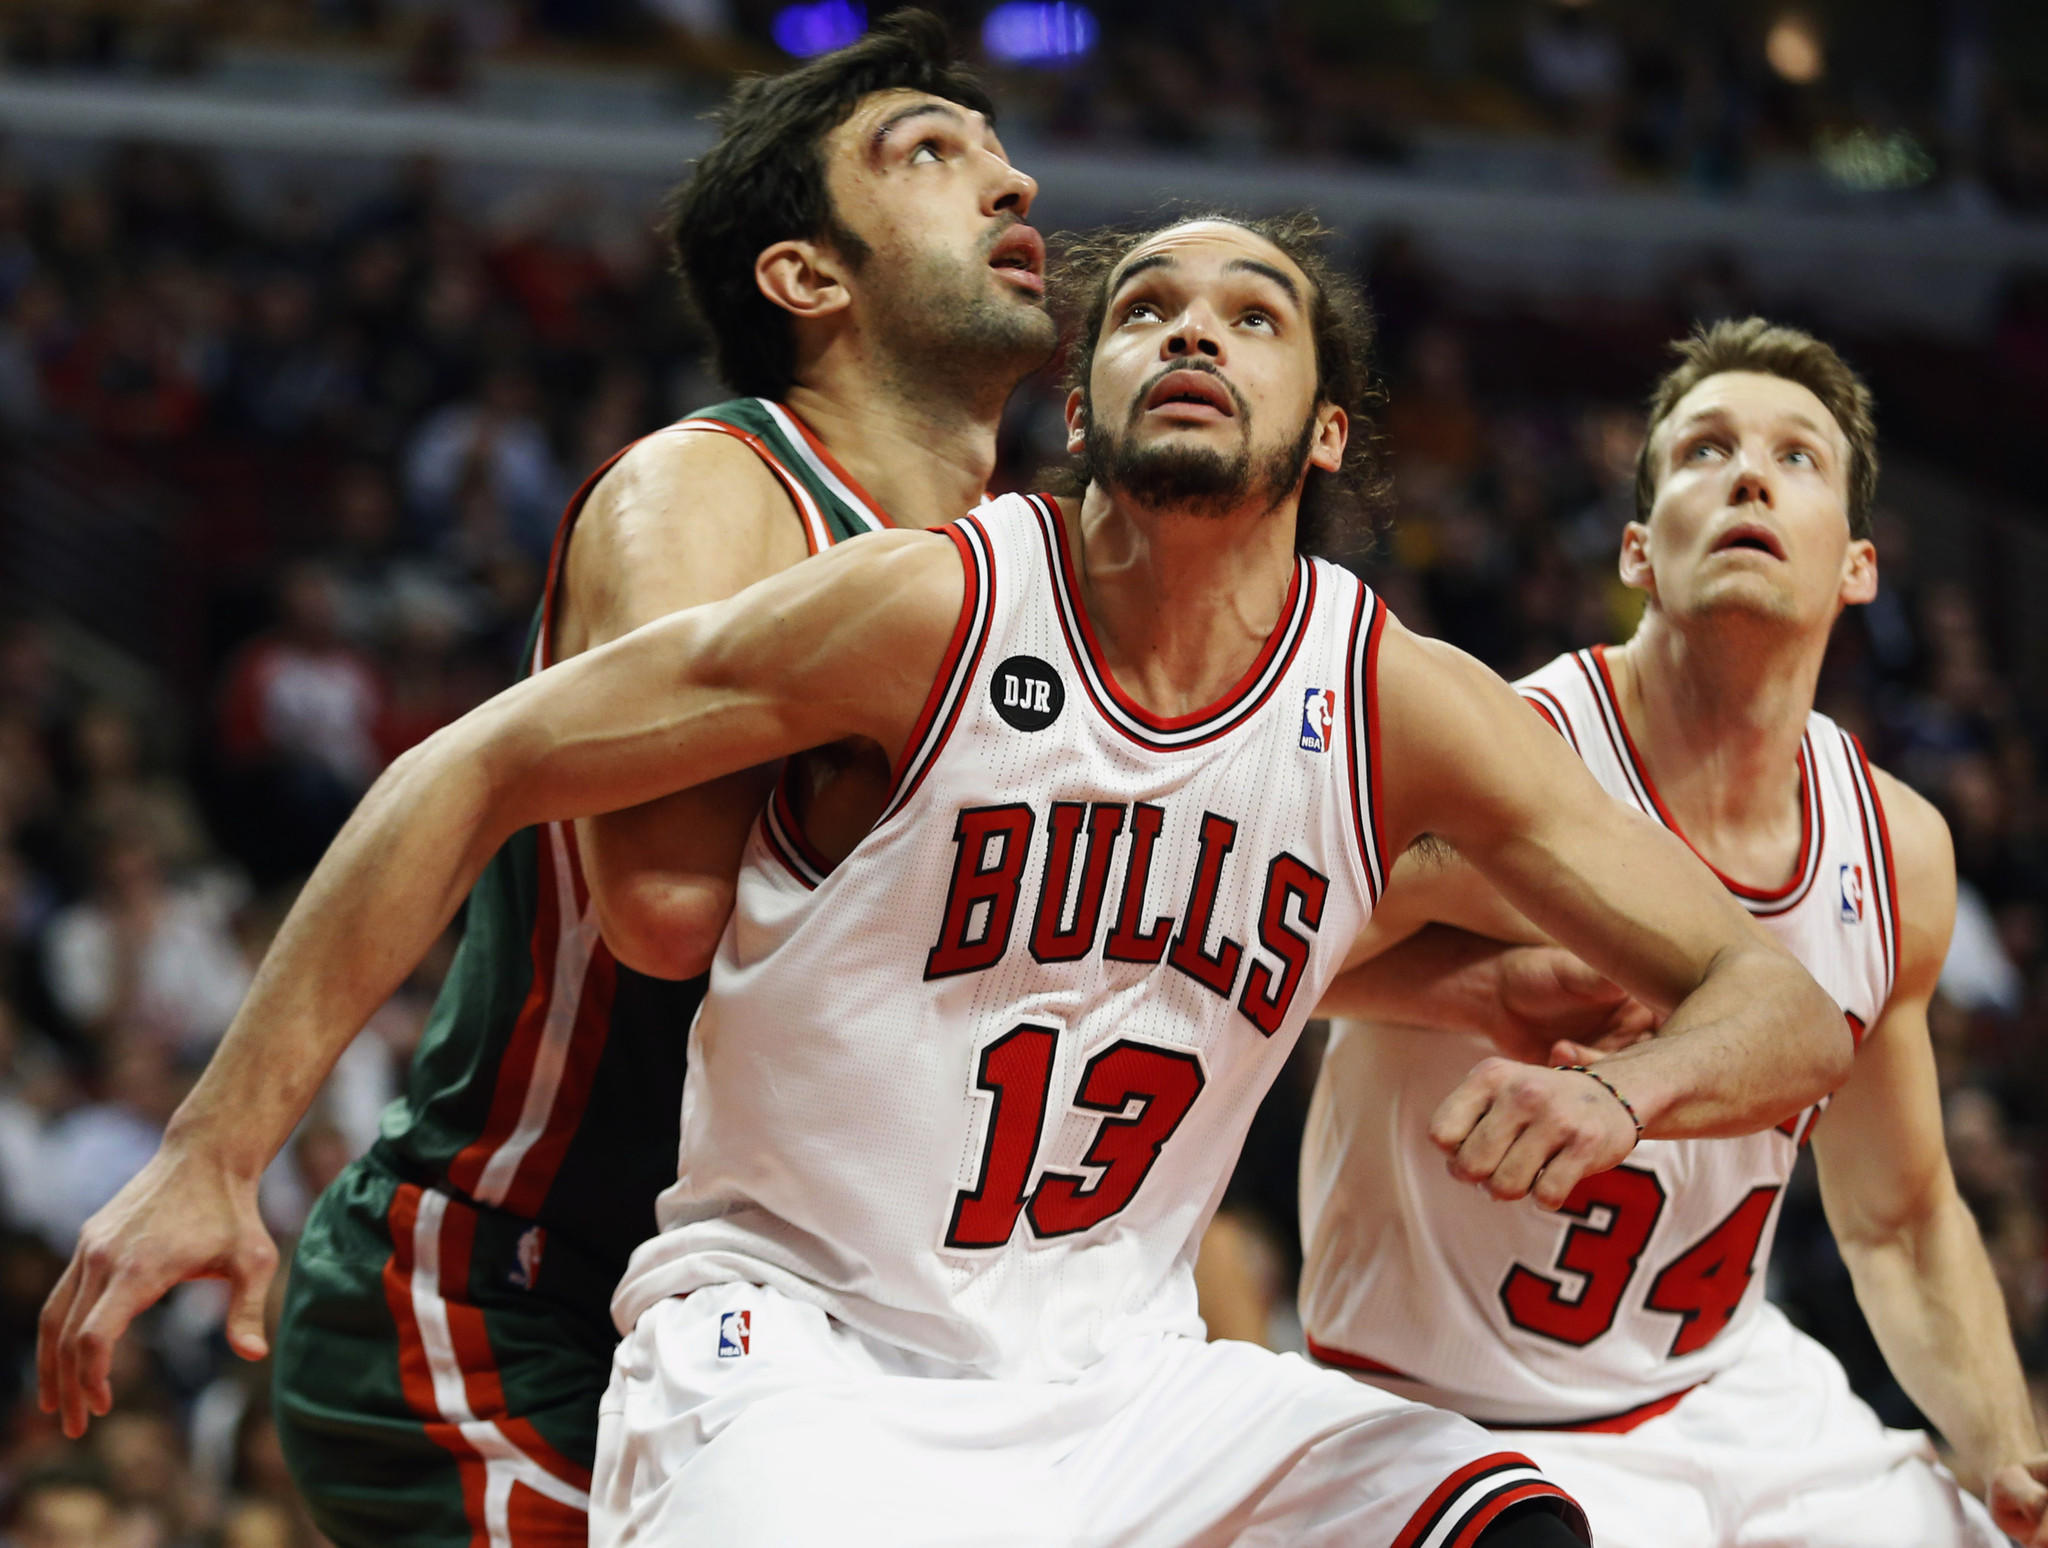 Chicago center Joakim Noah defends against Milwaukee center Zaza Pachulia.